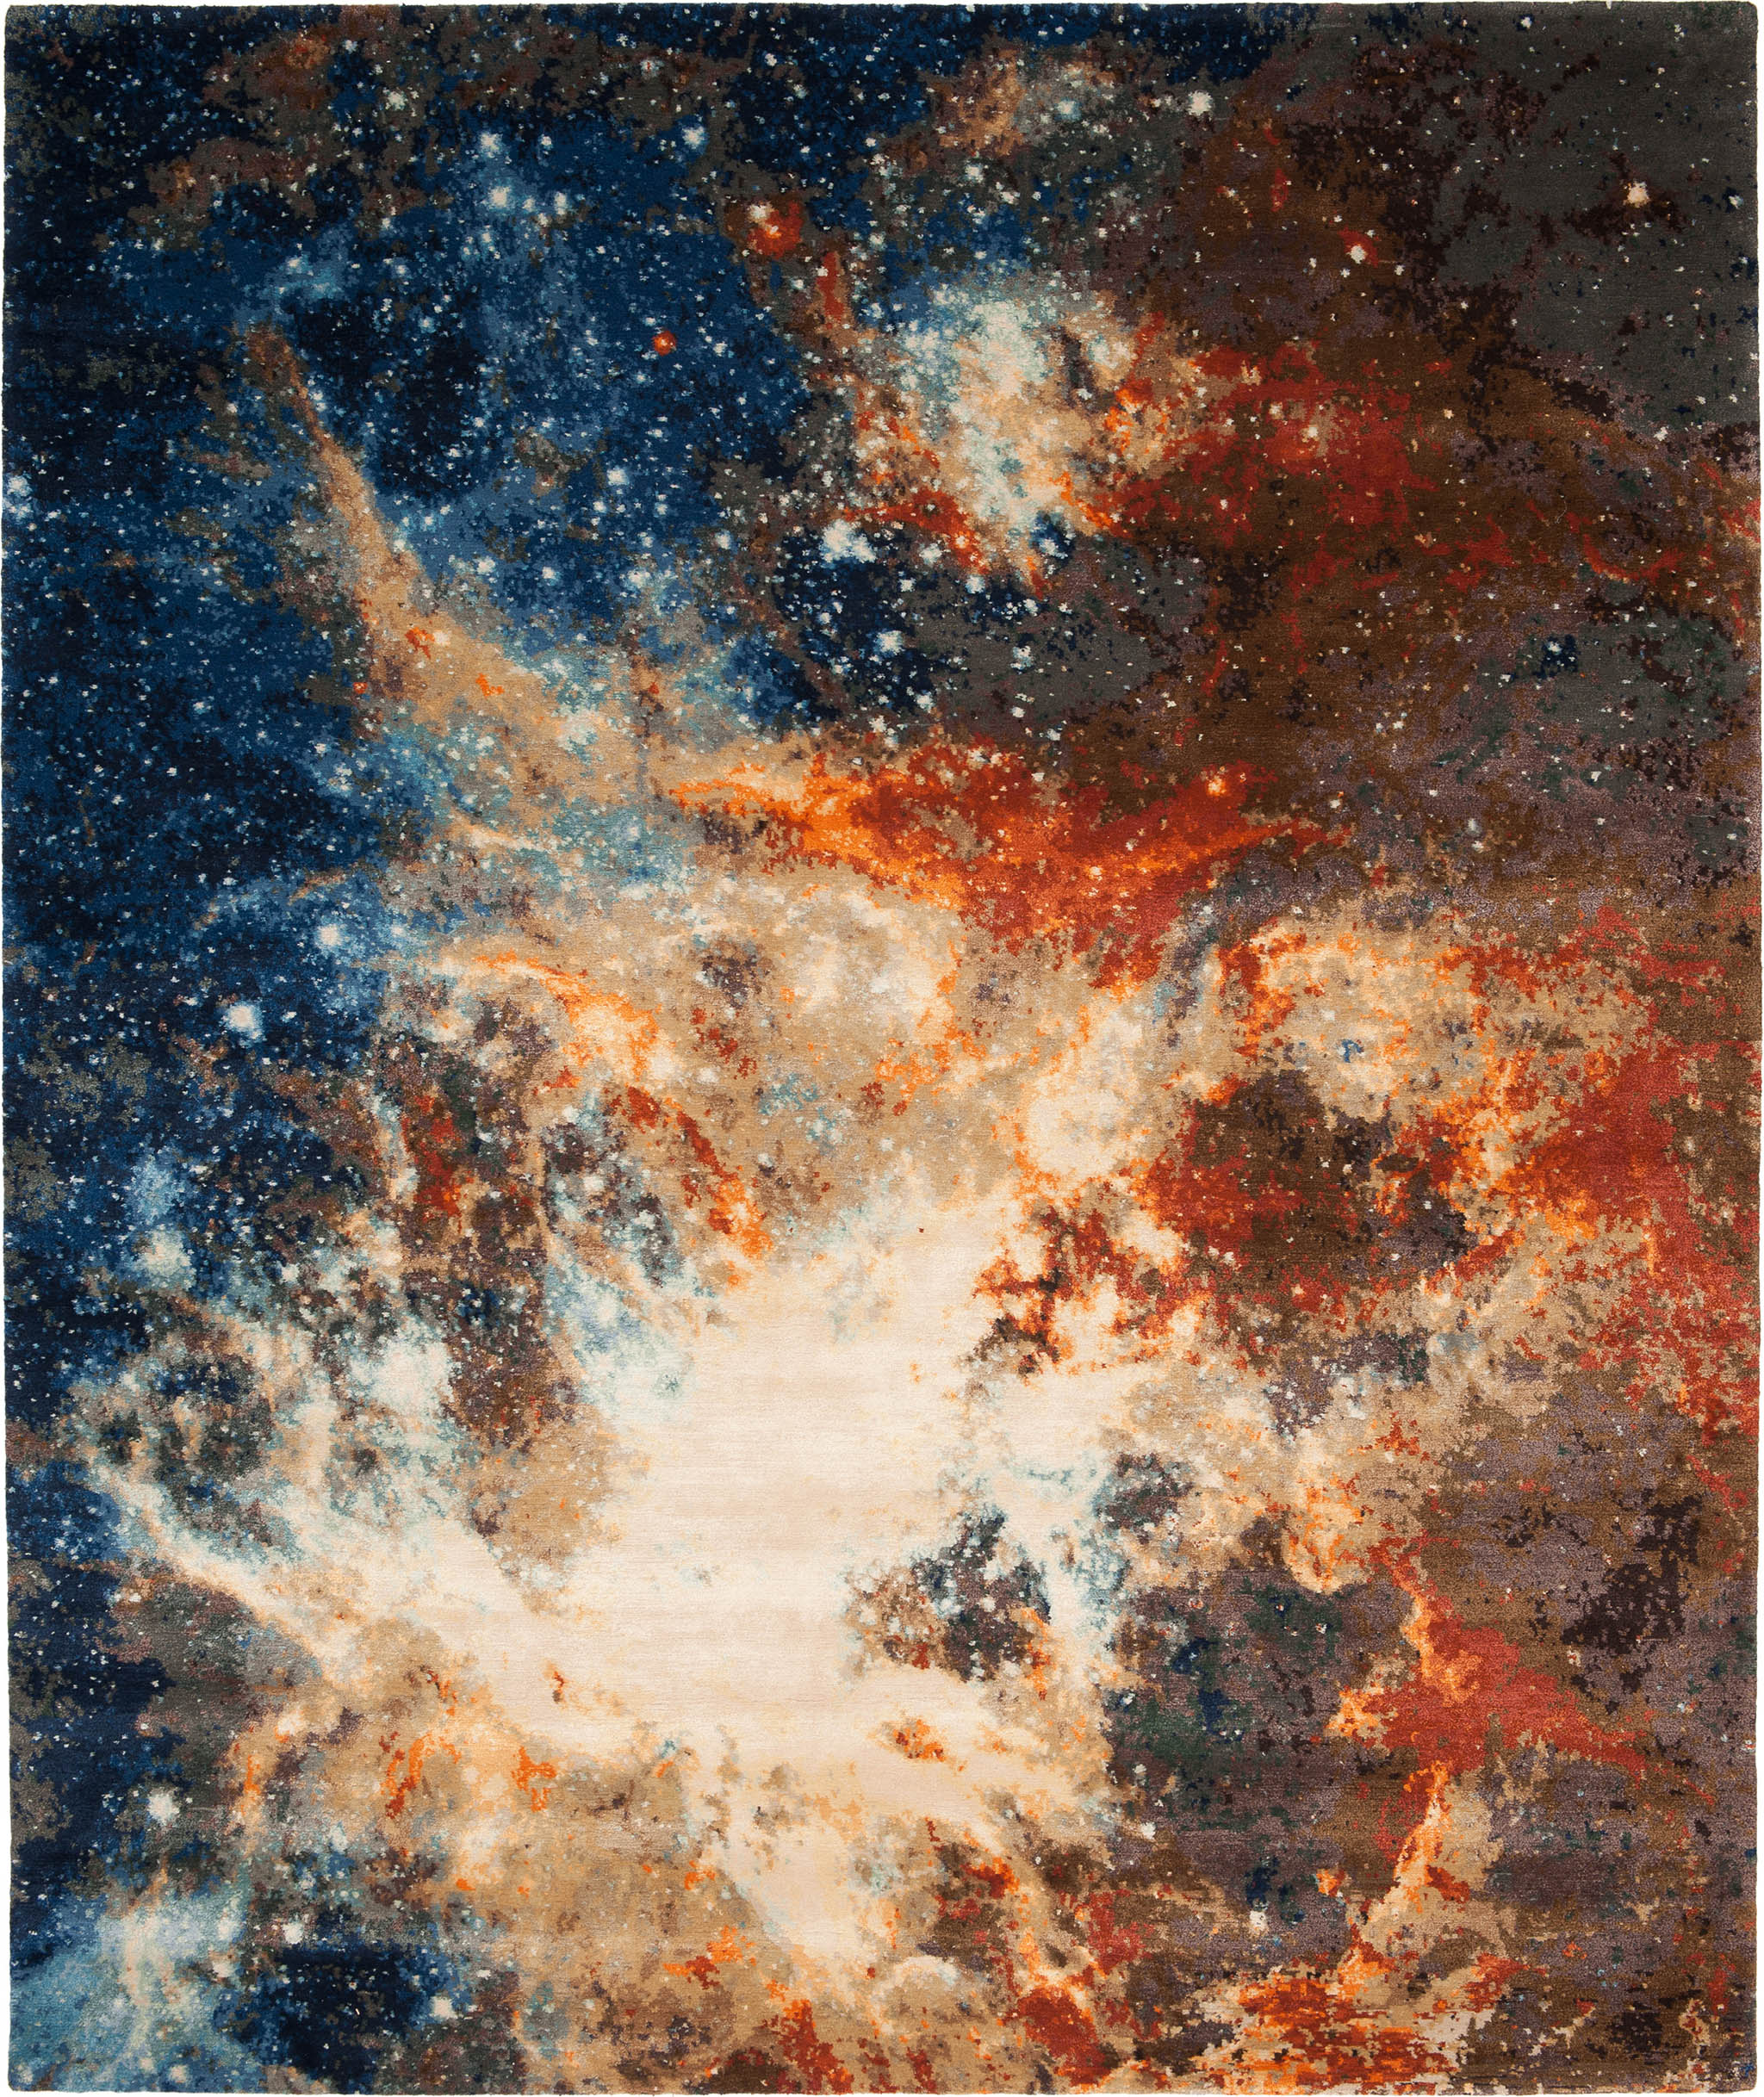 'Space 3' from the 'Spacecrafted' collection by Jan Kath. | Image courtesy of Jan Kath.